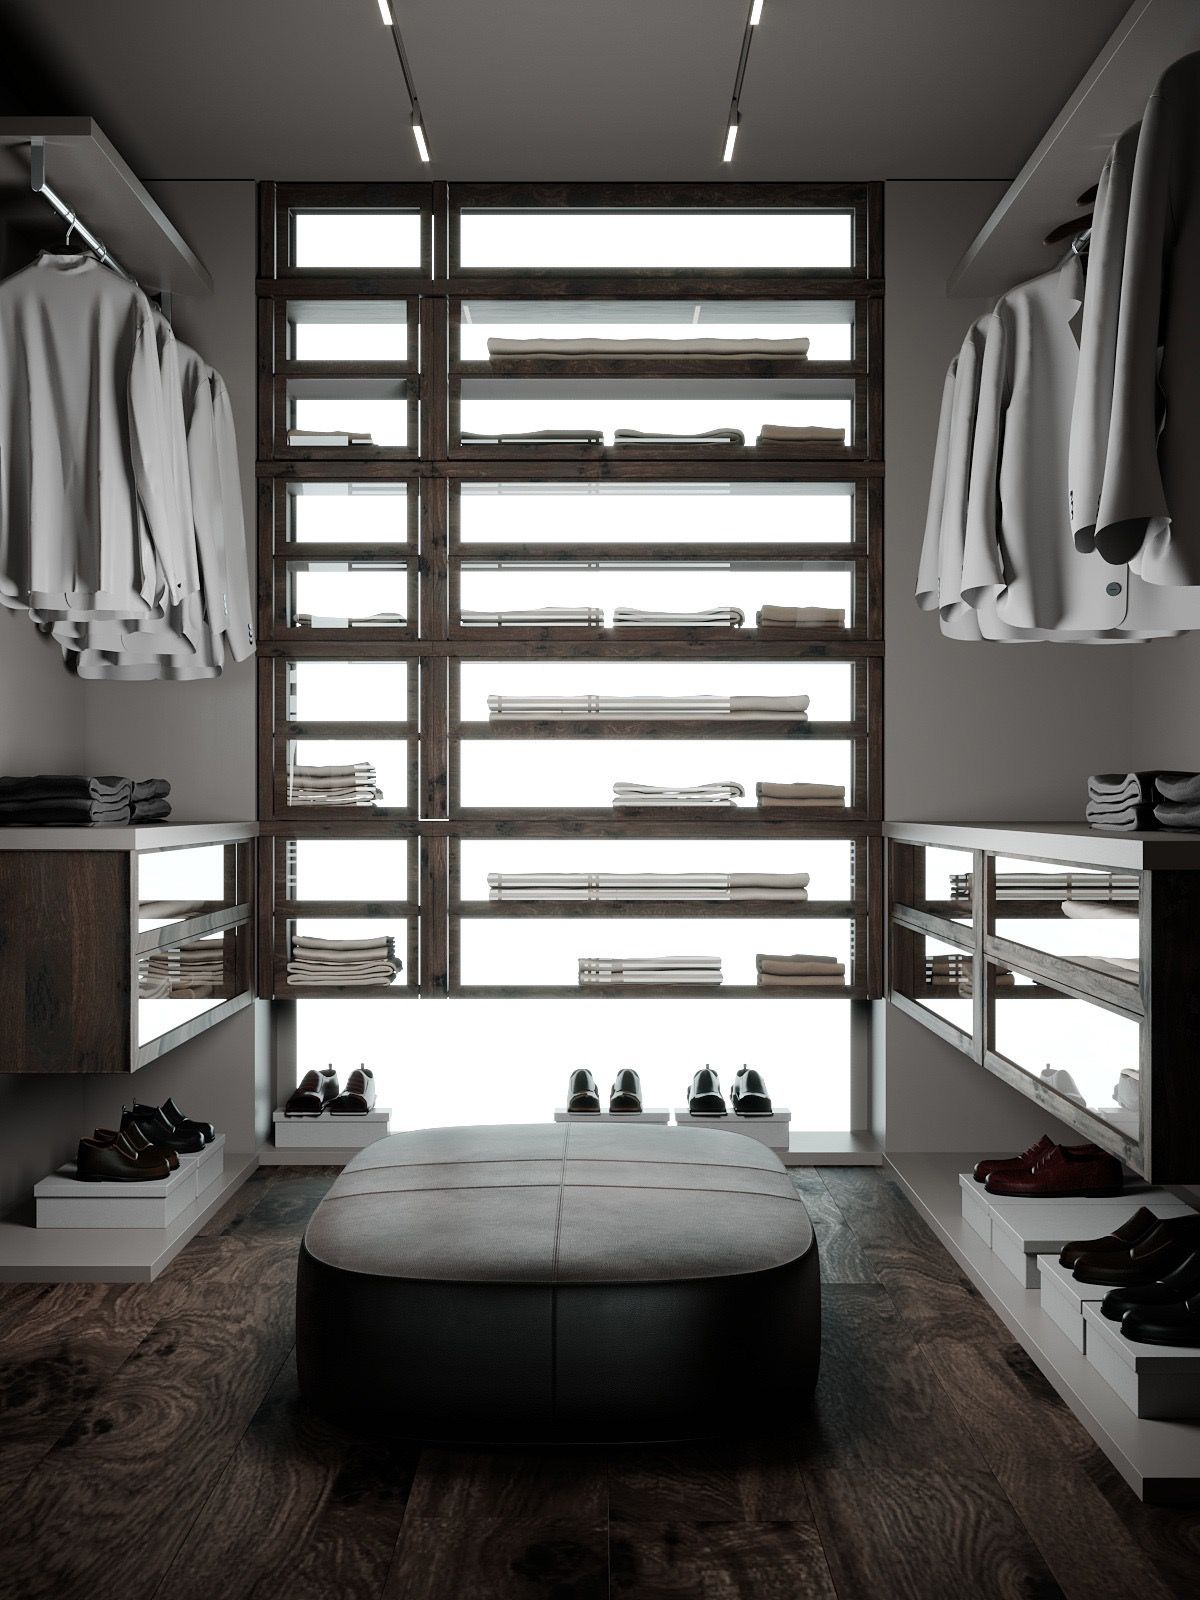 Ideas Of Functional And Practical Walk In Closet For Home: 40 Walk In Wardrobes That Will Give You Deep Closet Envy